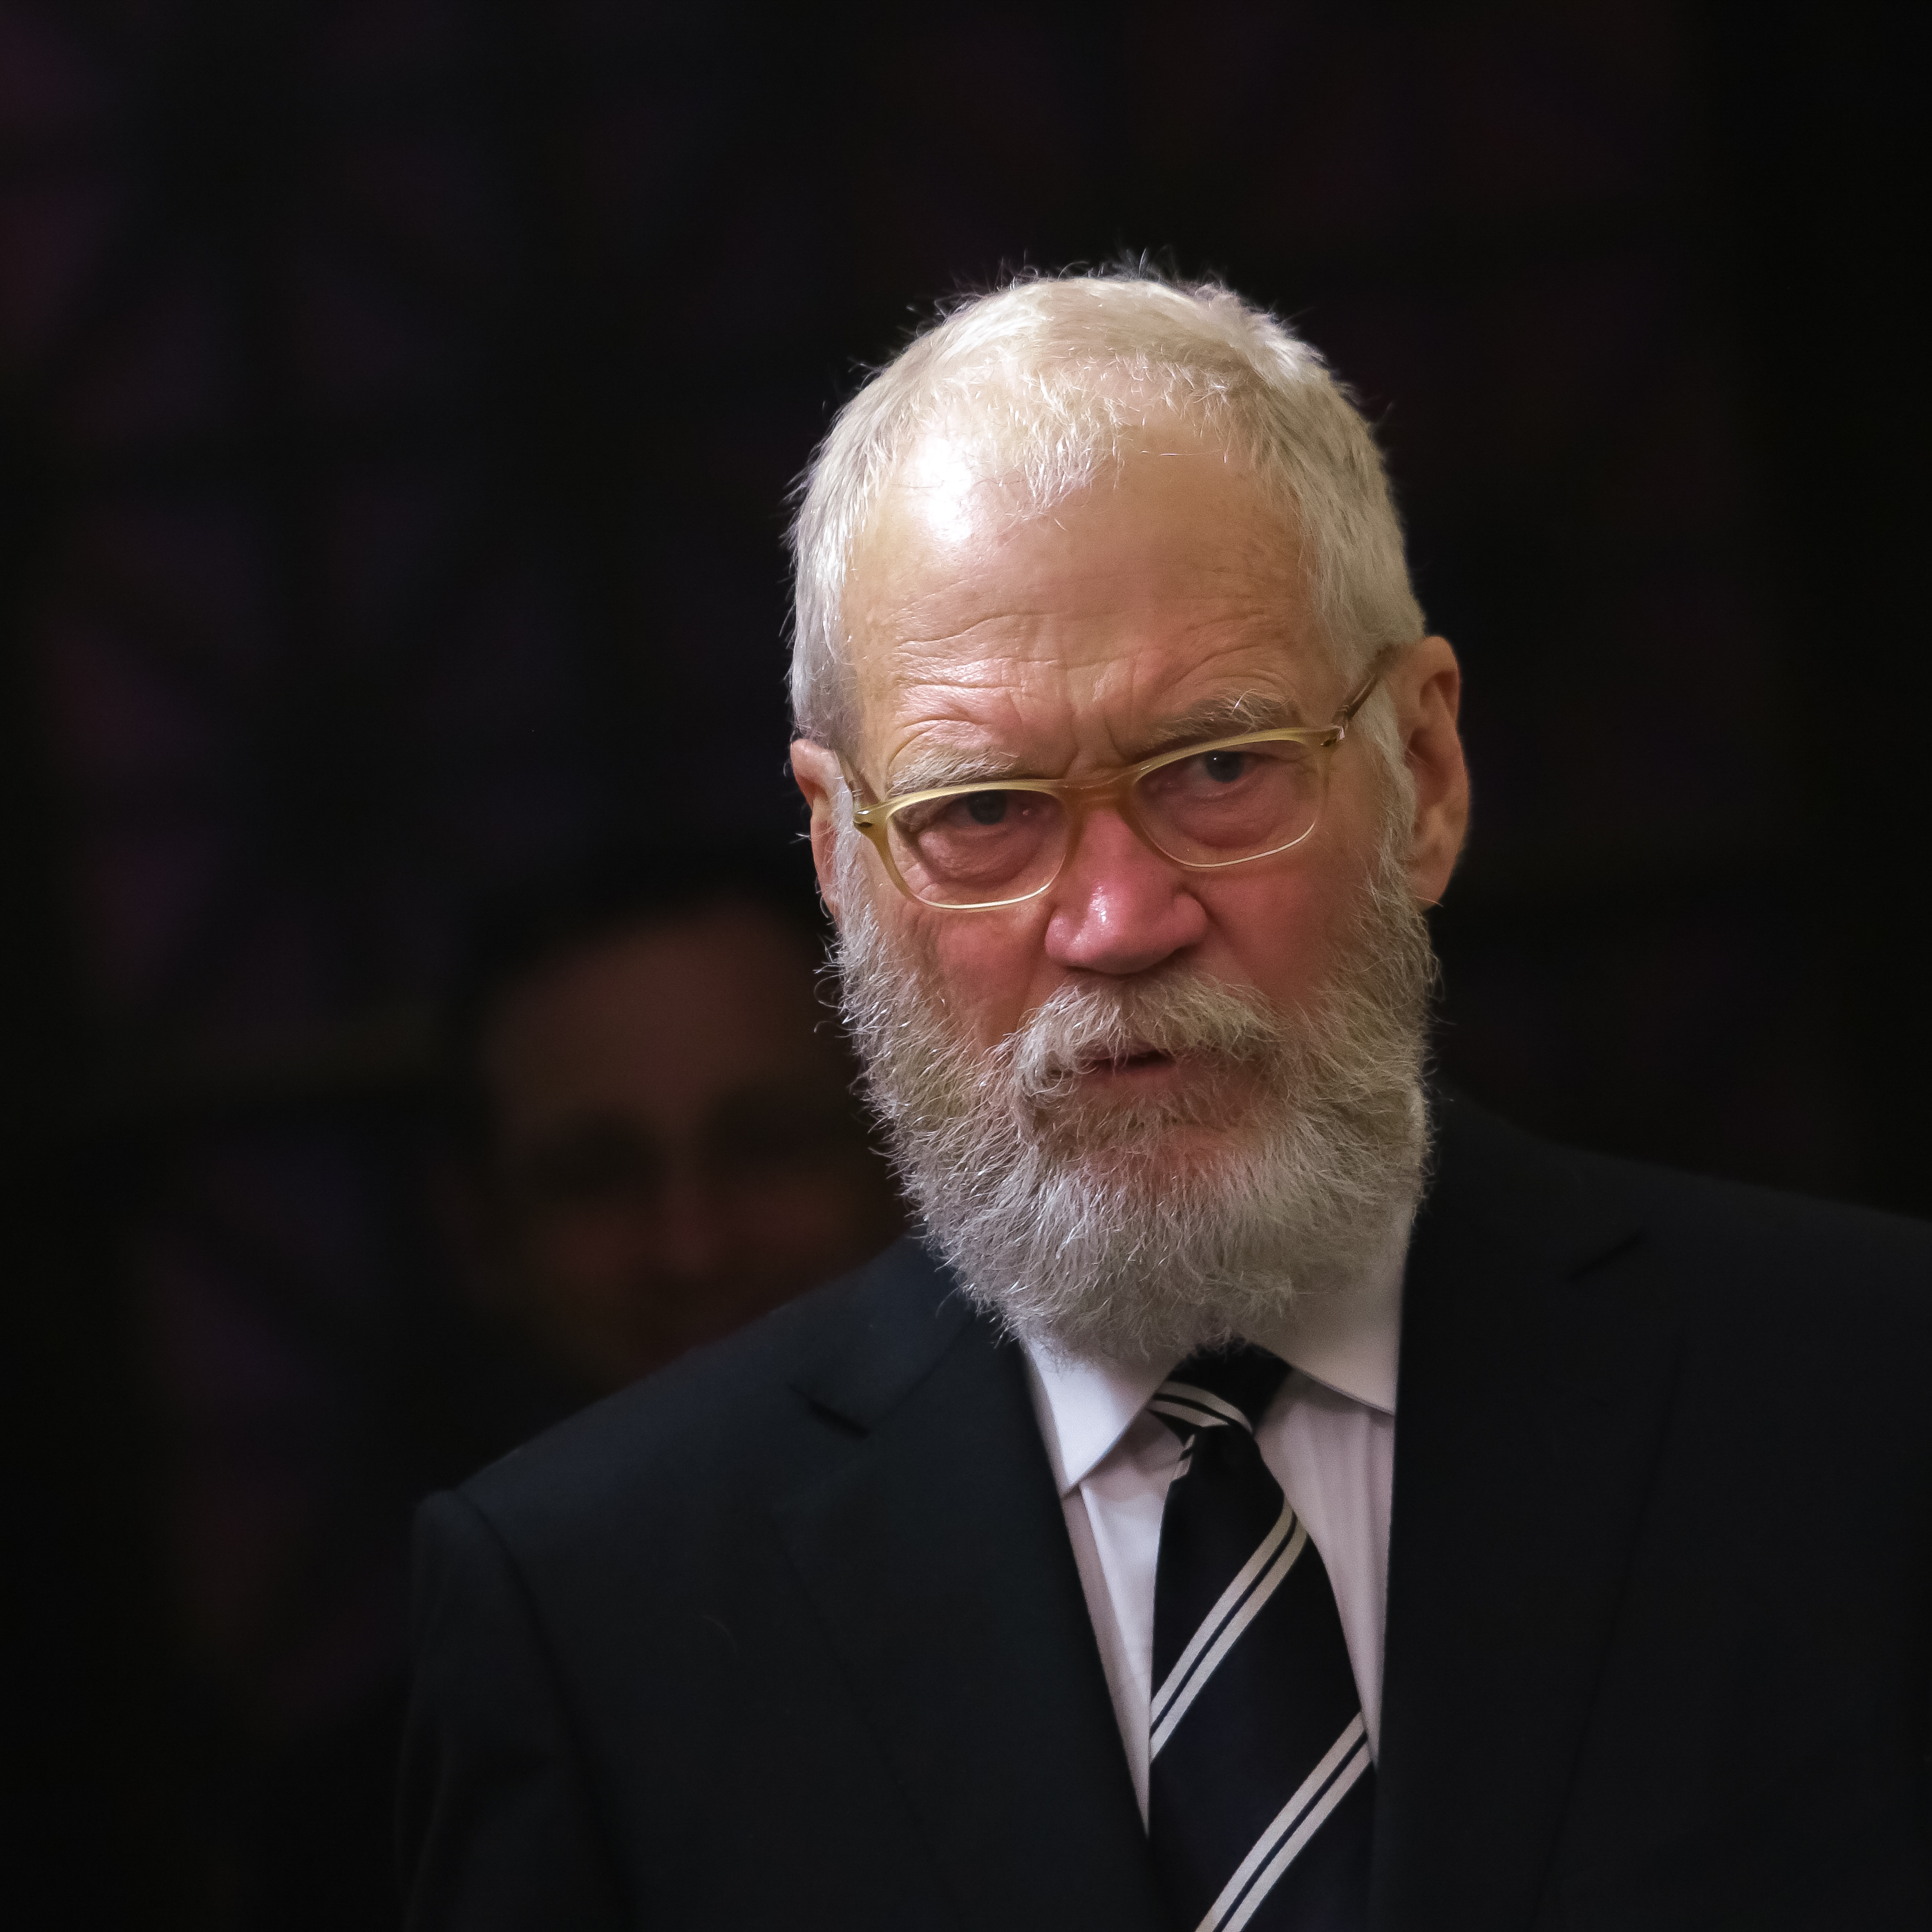 Individual Award Recipient, comedian/television host David Letterman is seen entering the press room during the 75th Annual Peabody Awards Ceremony held at Cipriani Wall Street on May 21, 2016 in New York City. Brent N. Clarke—FilmMagic